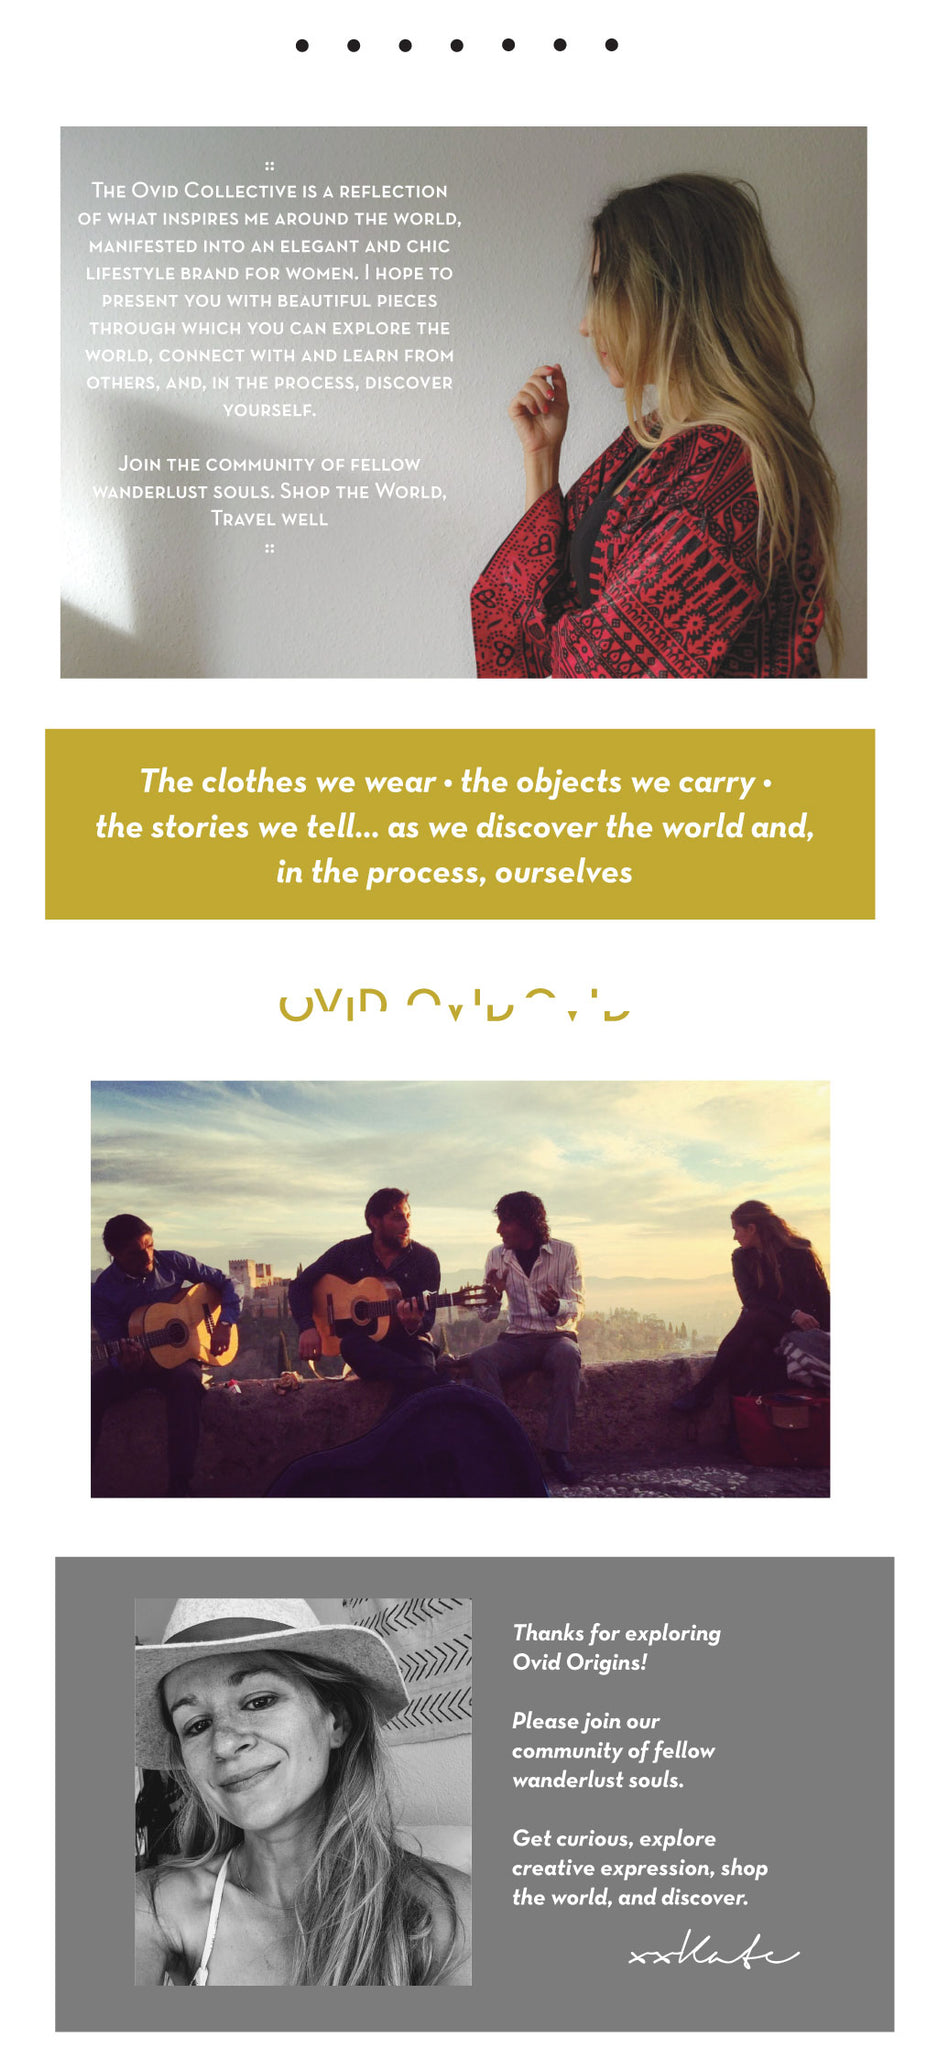 Three images - a woman in a red African kimono in profile, a woman with three flamenco guitarists, a woman in a hat.